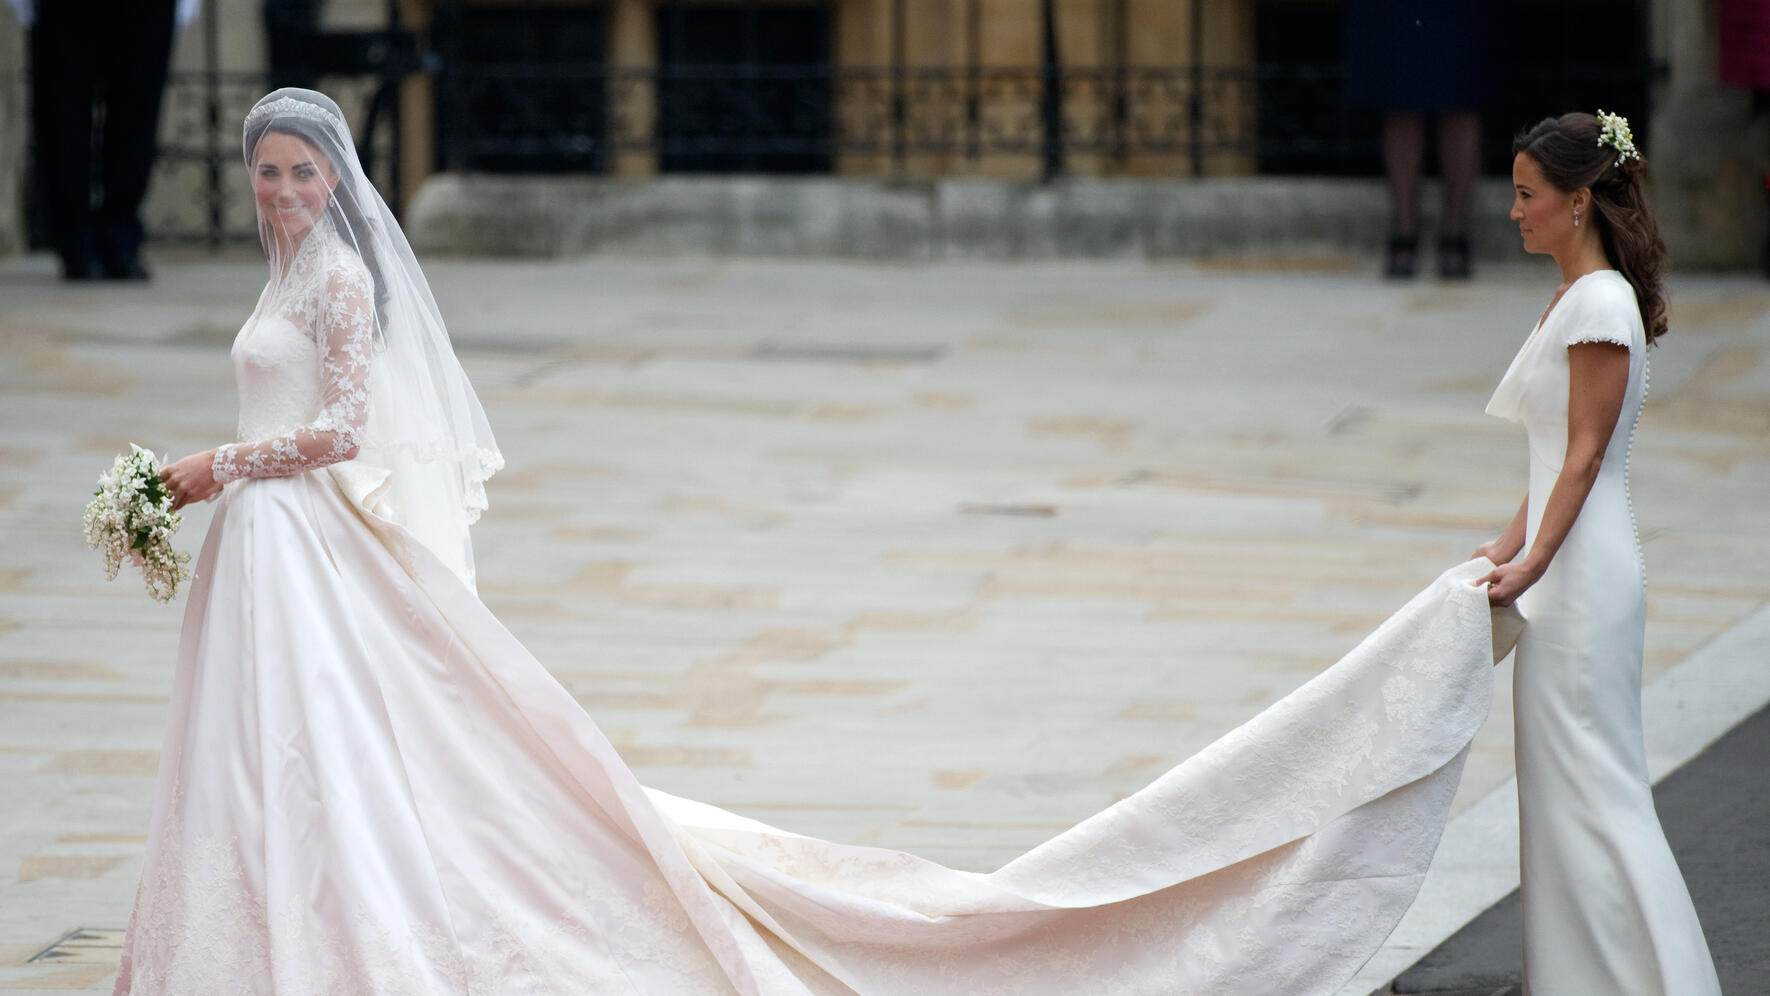 Catherine Middleton (L) and Pippa Middleton arrive for her wedding to Prince William, Duke of Cambridge at Westminster Abbey on April 29, 2011 in London, England. (Photo by Anwar Hussein/WireImage)